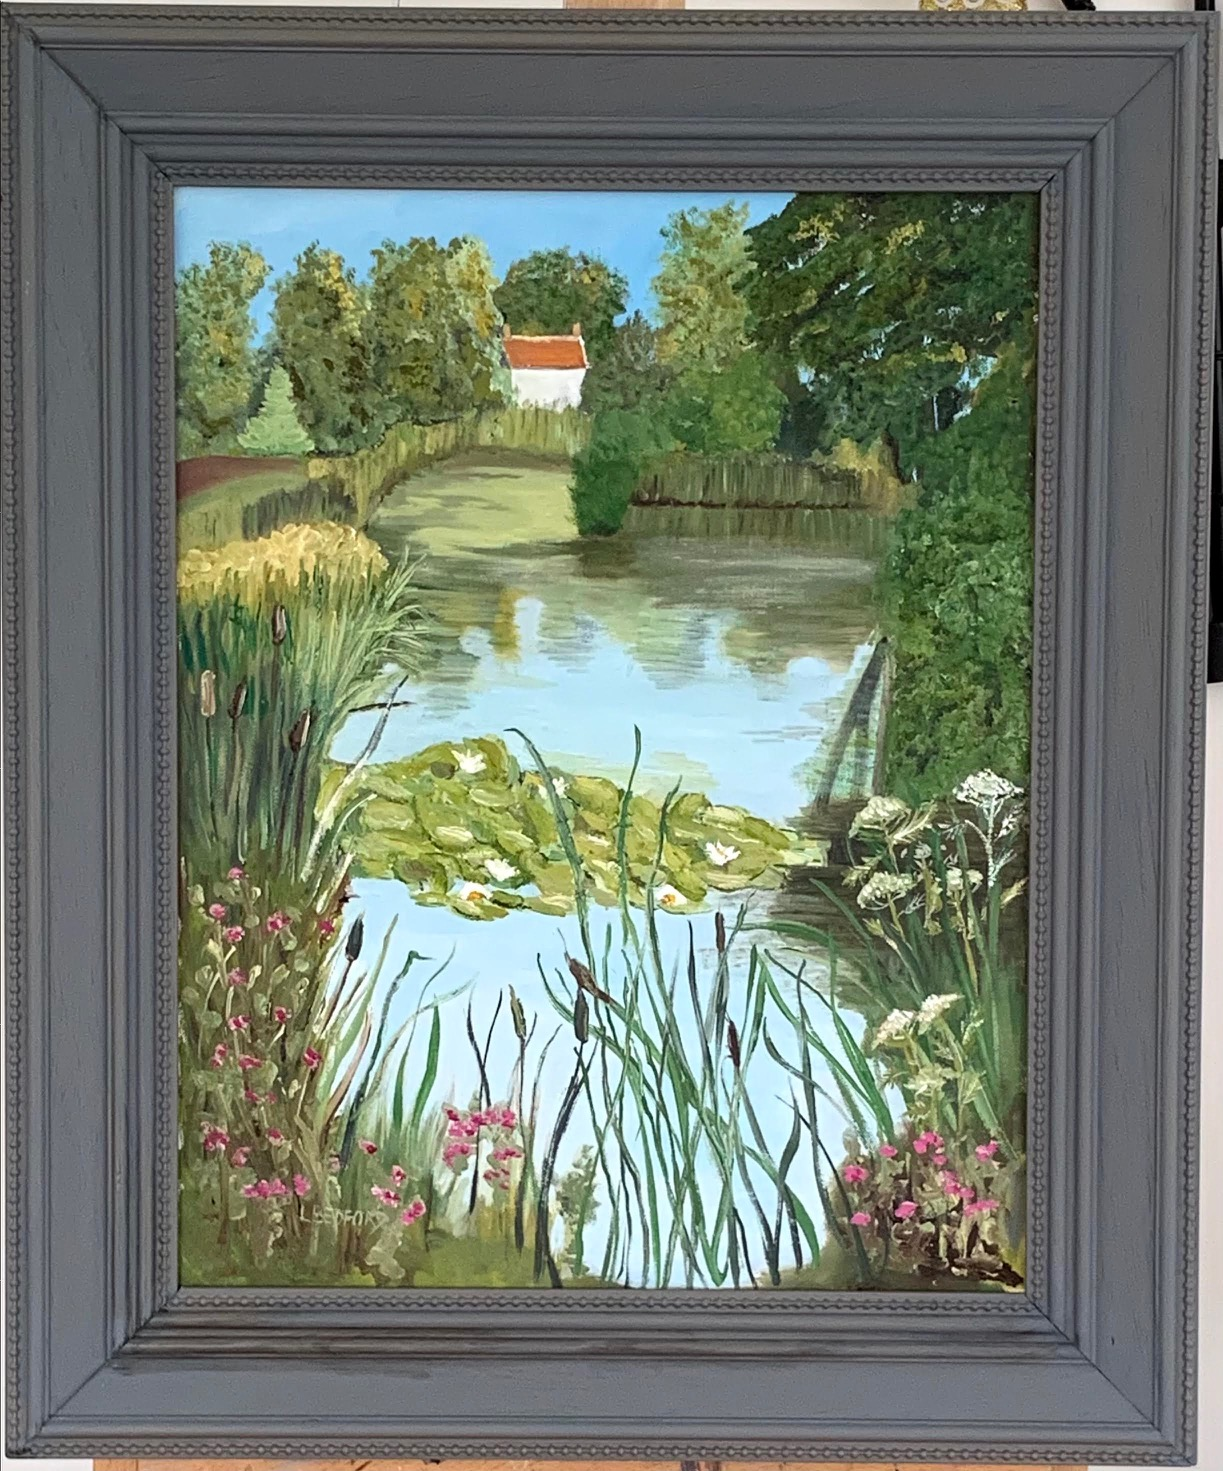 Linda Bedford is a Self taught artist known for her fresh looking everyday scenes. She exhibits